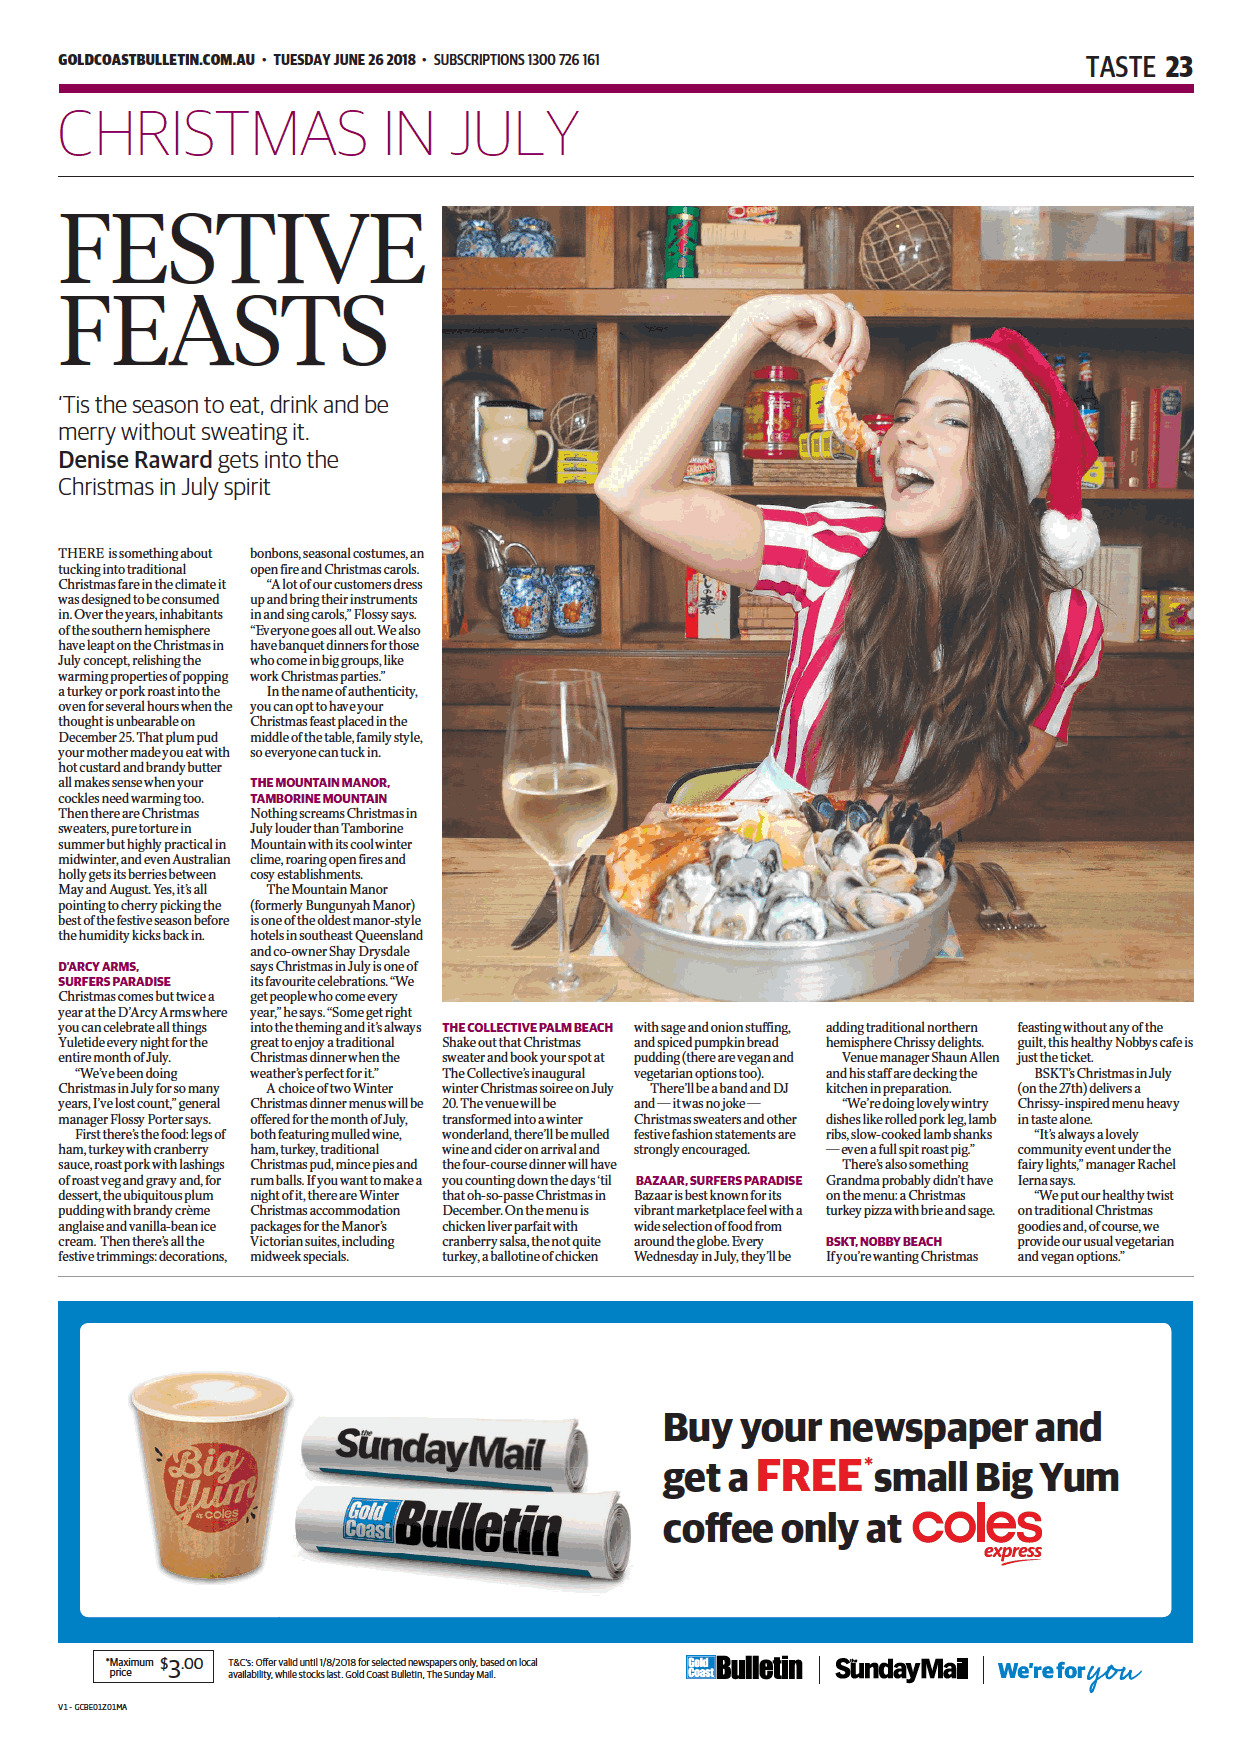 Gold Coast Bulletin - Christmas in July 2018 - D\'Arcy Arms